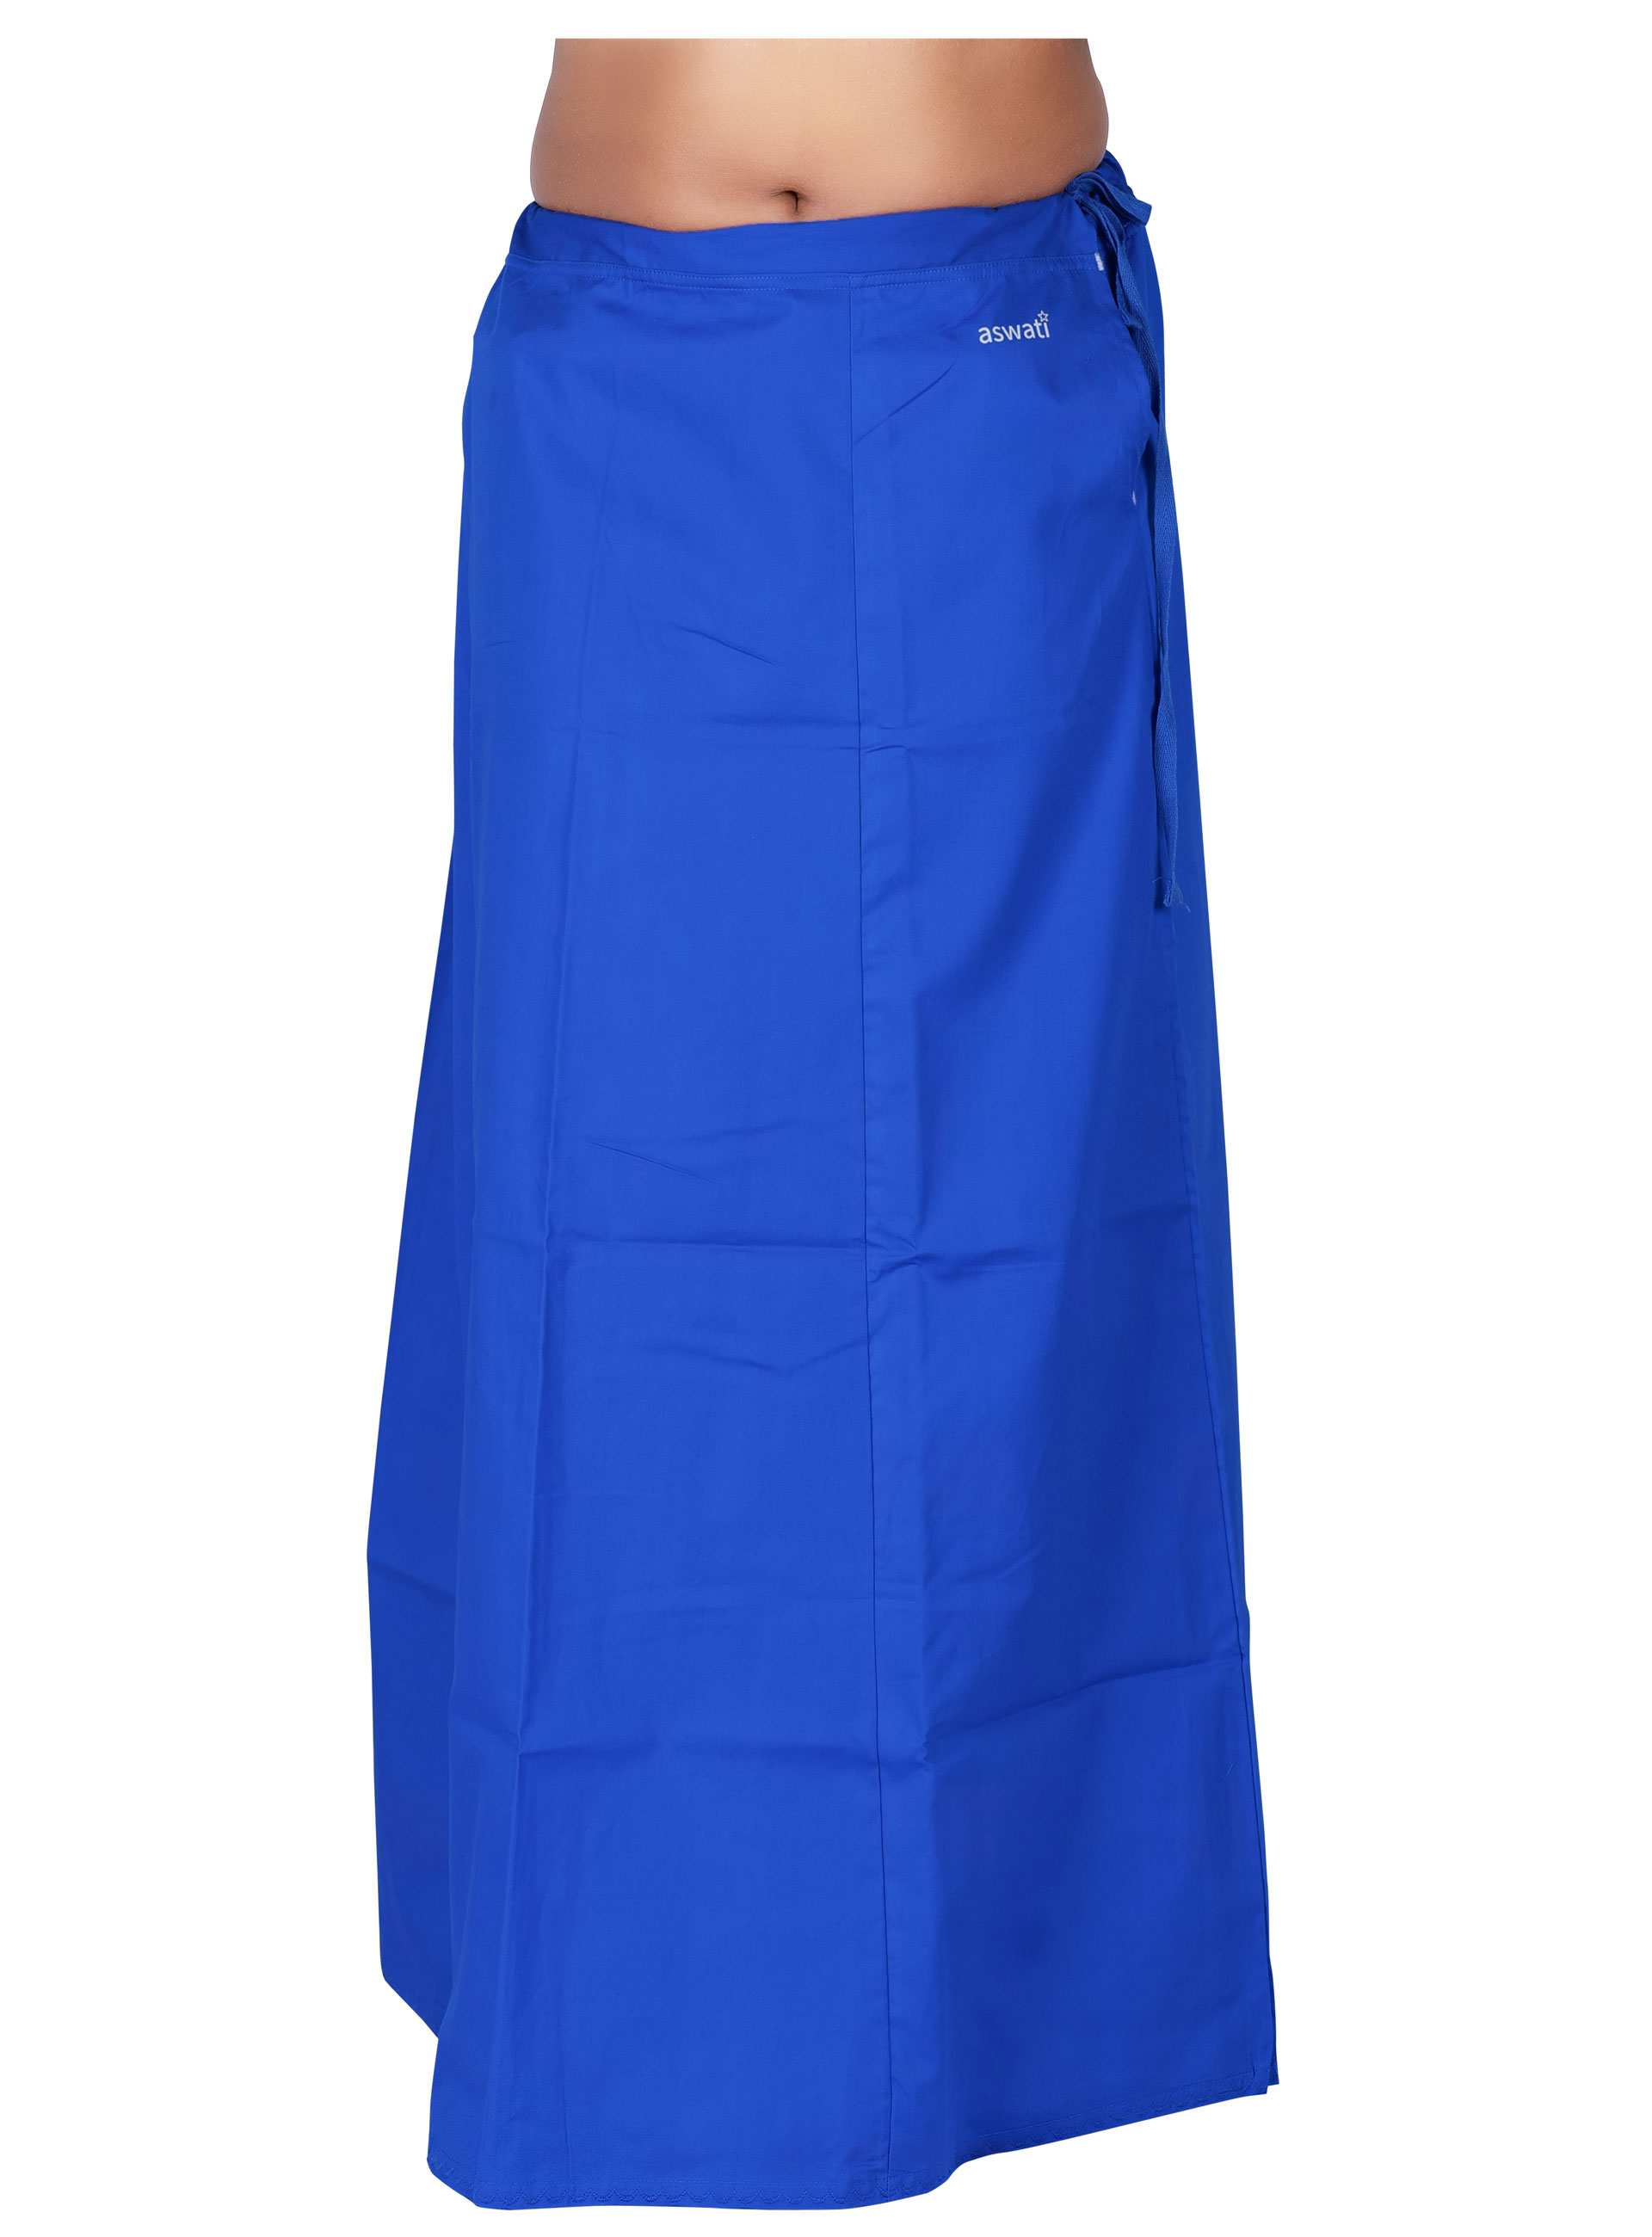 Blue Color Aswati Premium Inskirts (7 PART)